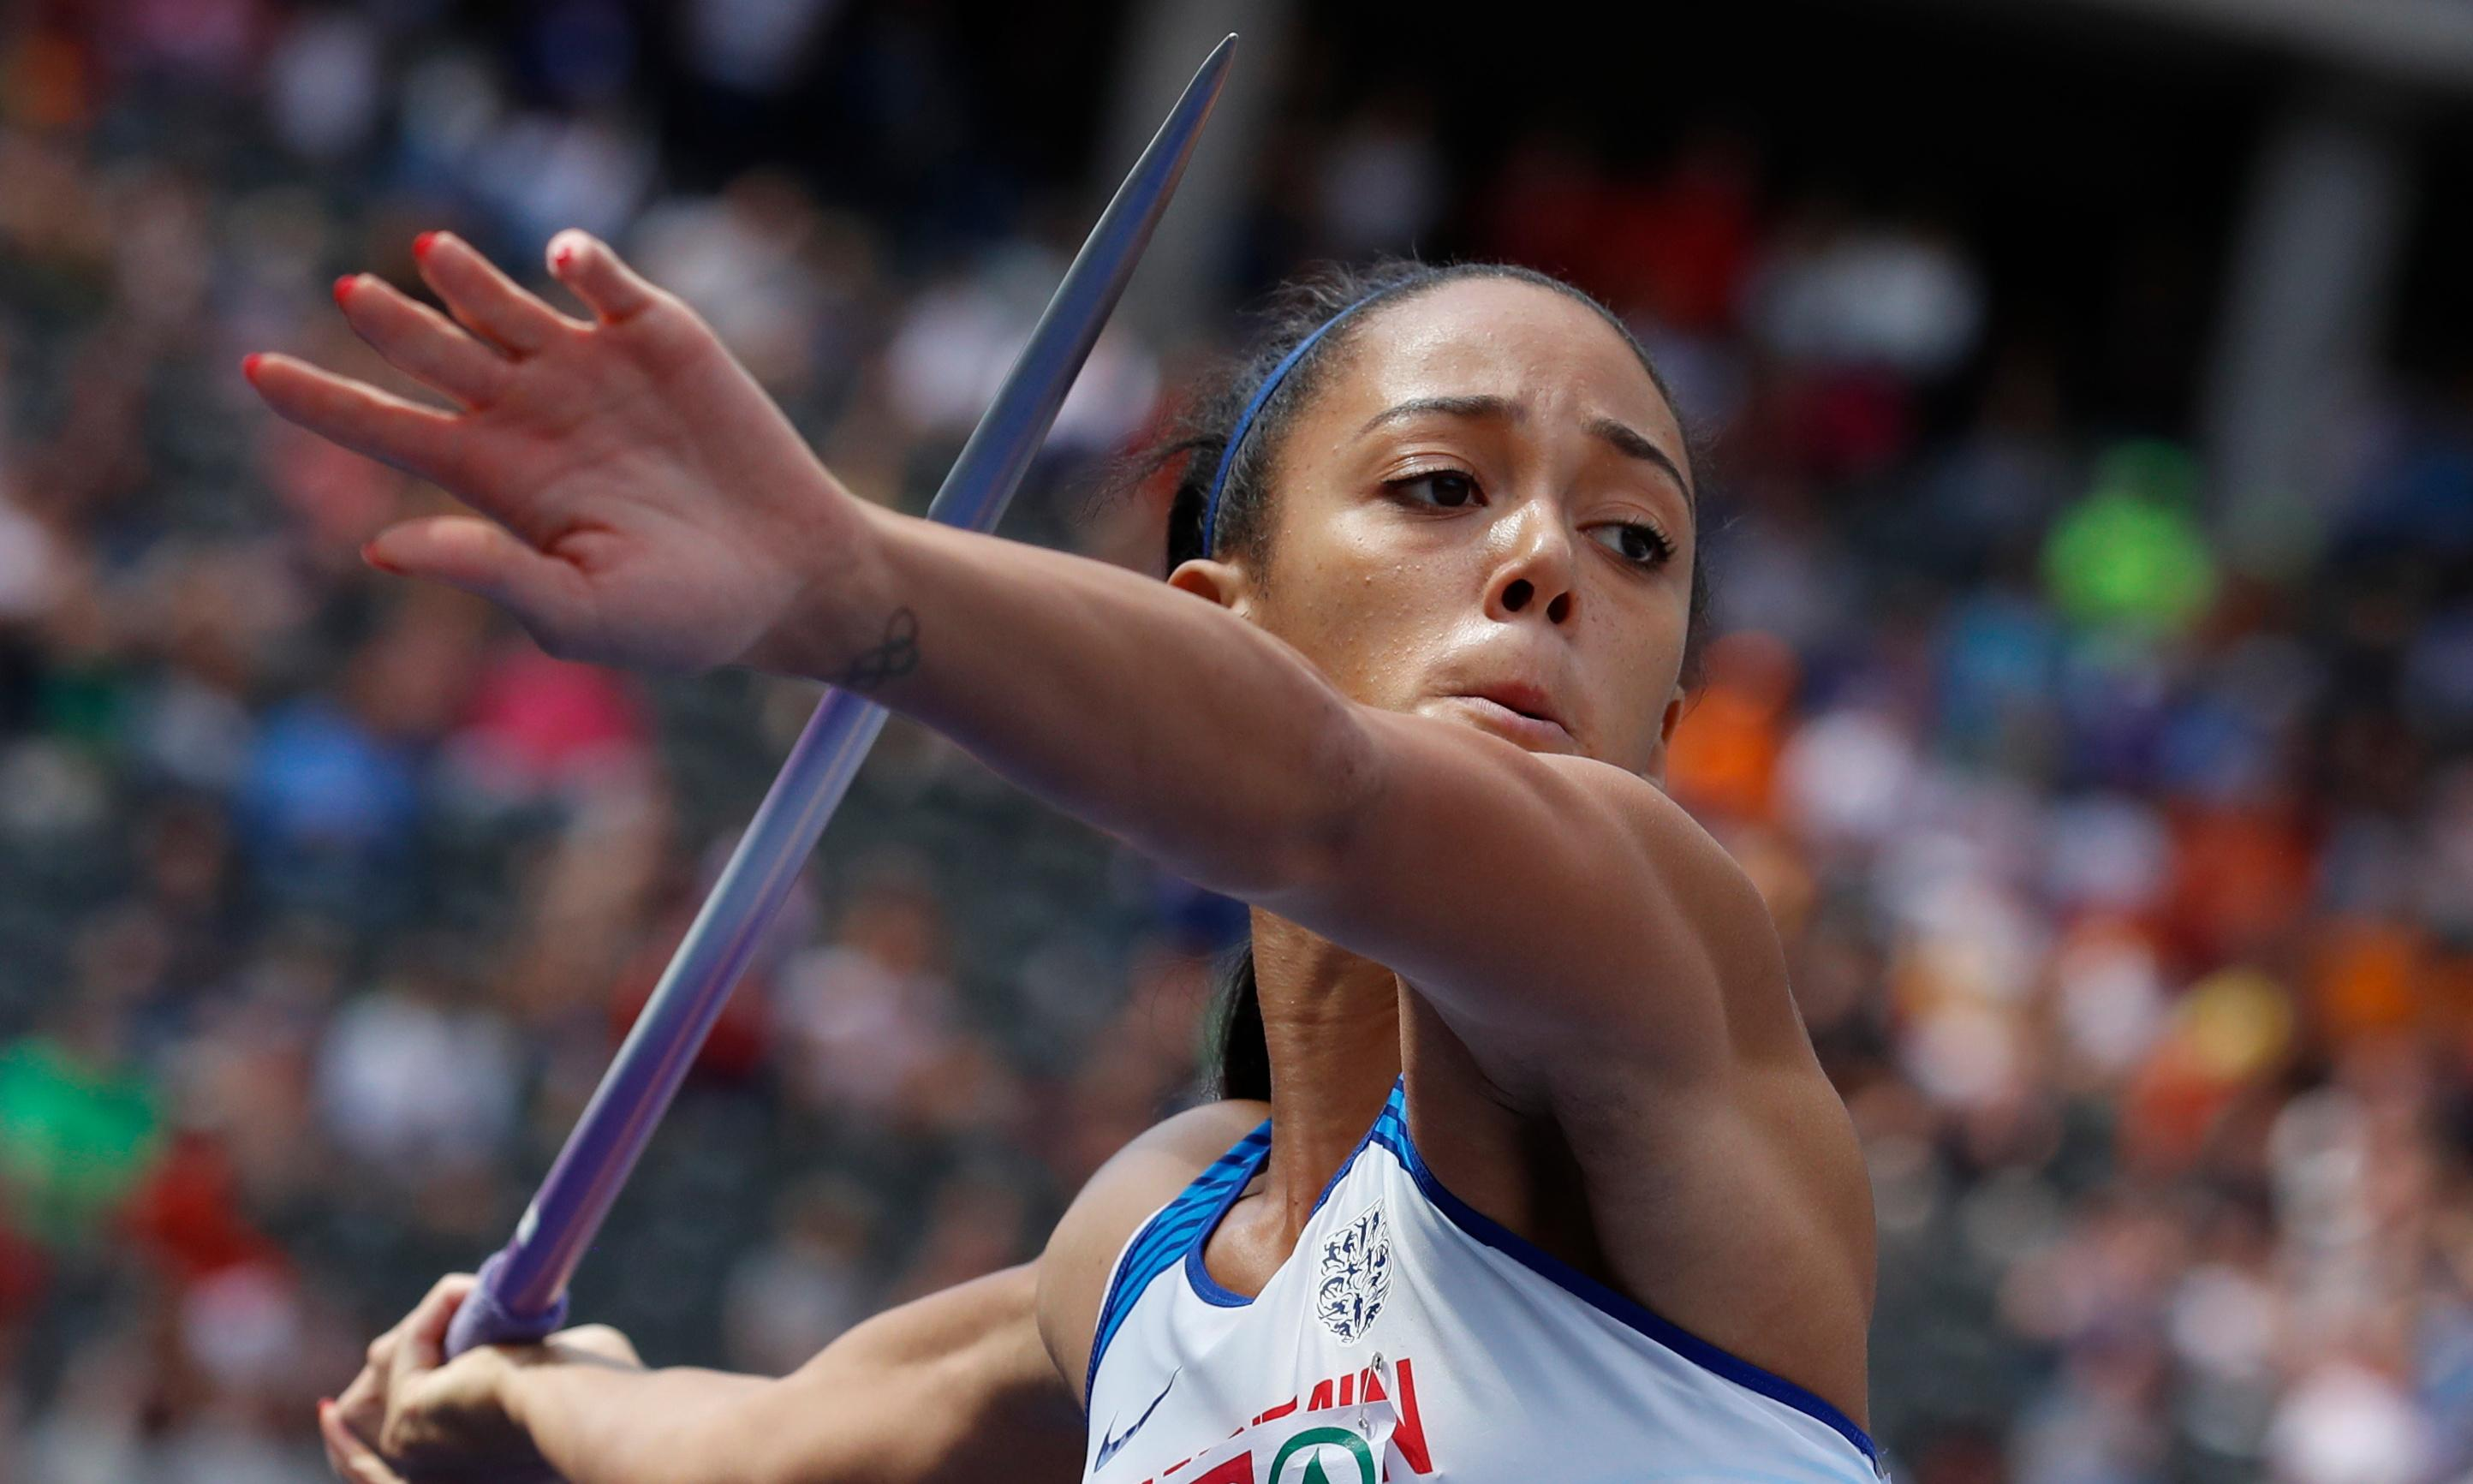 Katarina Johnson-Thompson: 'I don't know what it'll take not to feel like an impostor'